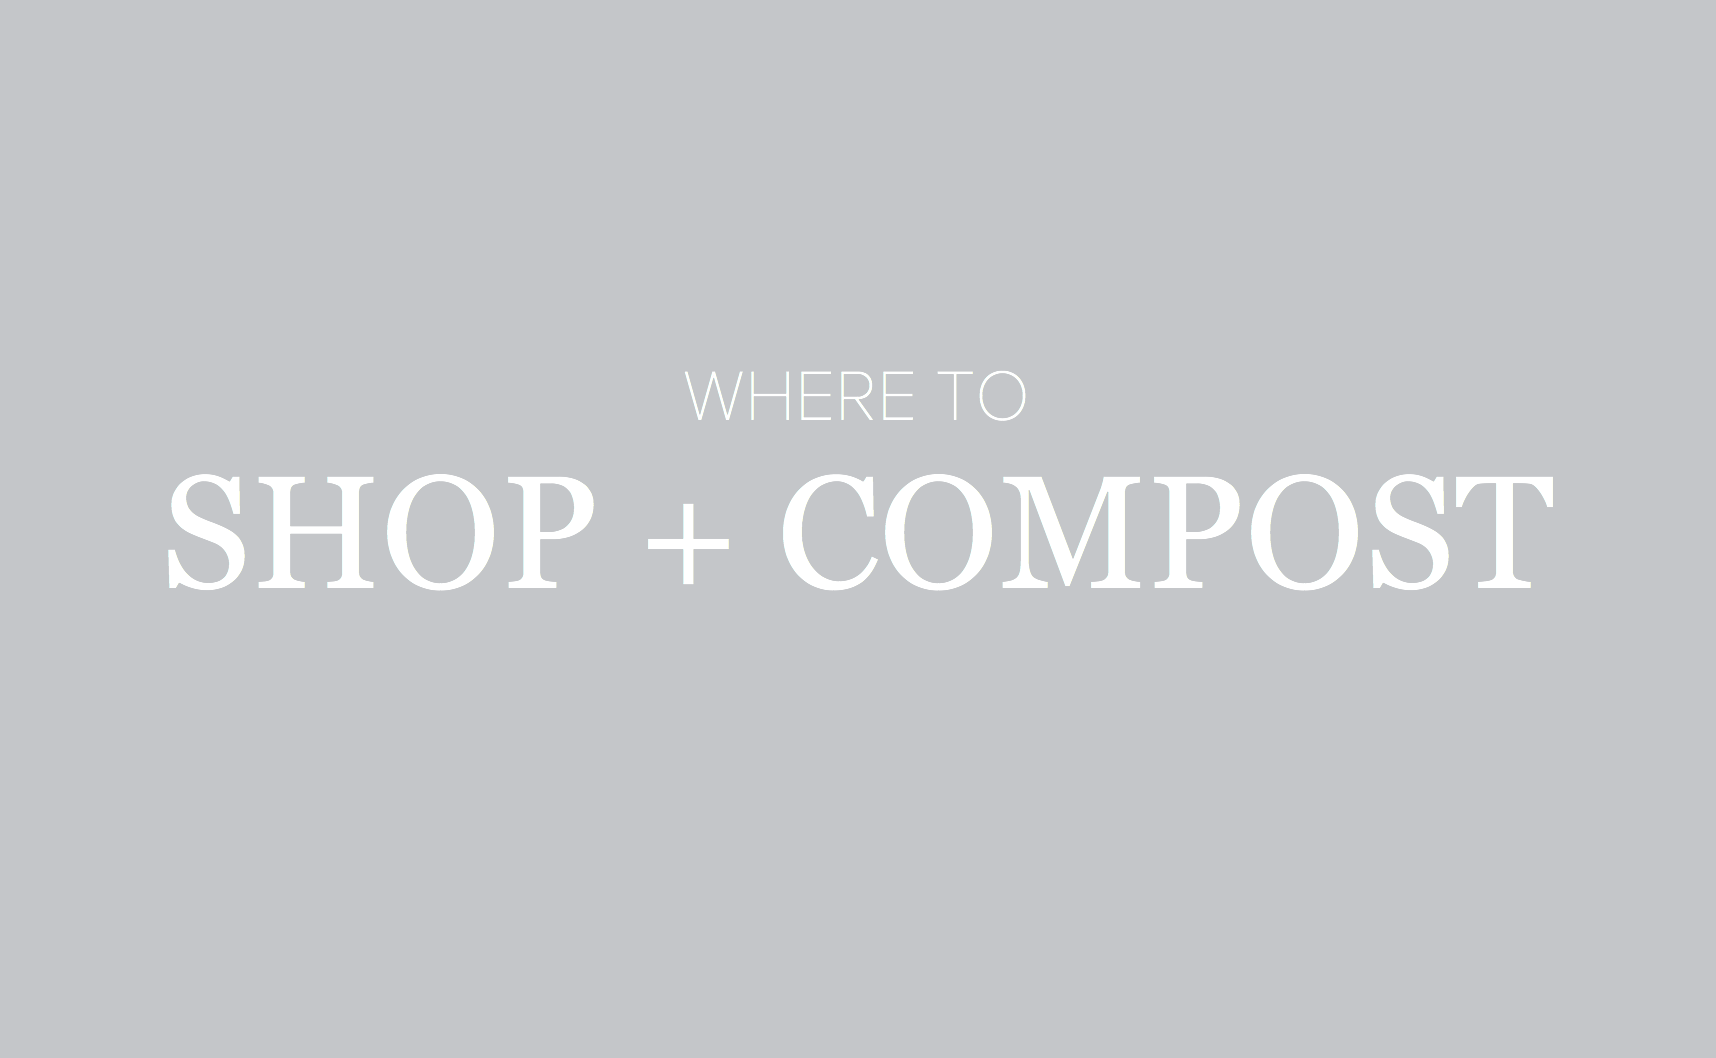 Where to shop in bulk and compost for a zero waste home | Litterless